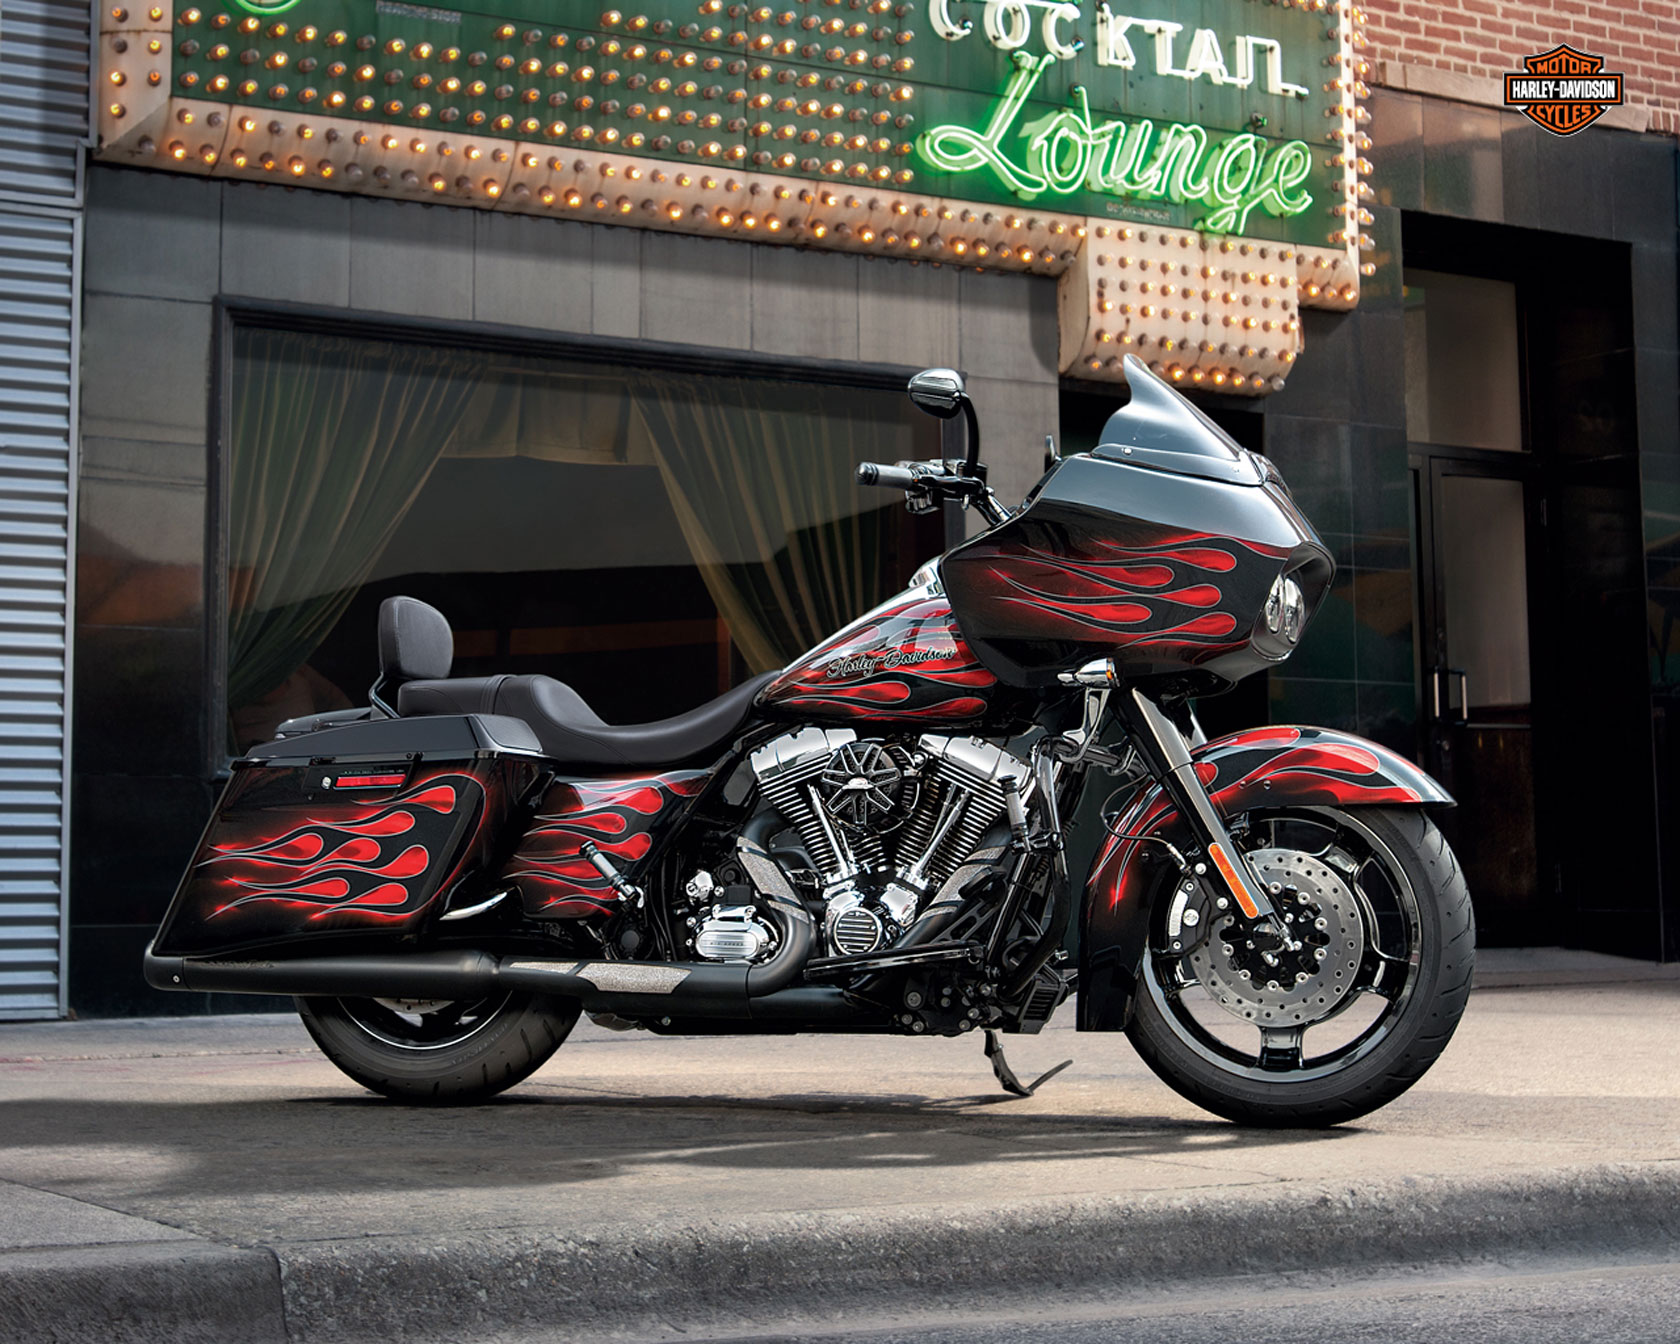 Harley-davidson custom photo - 9